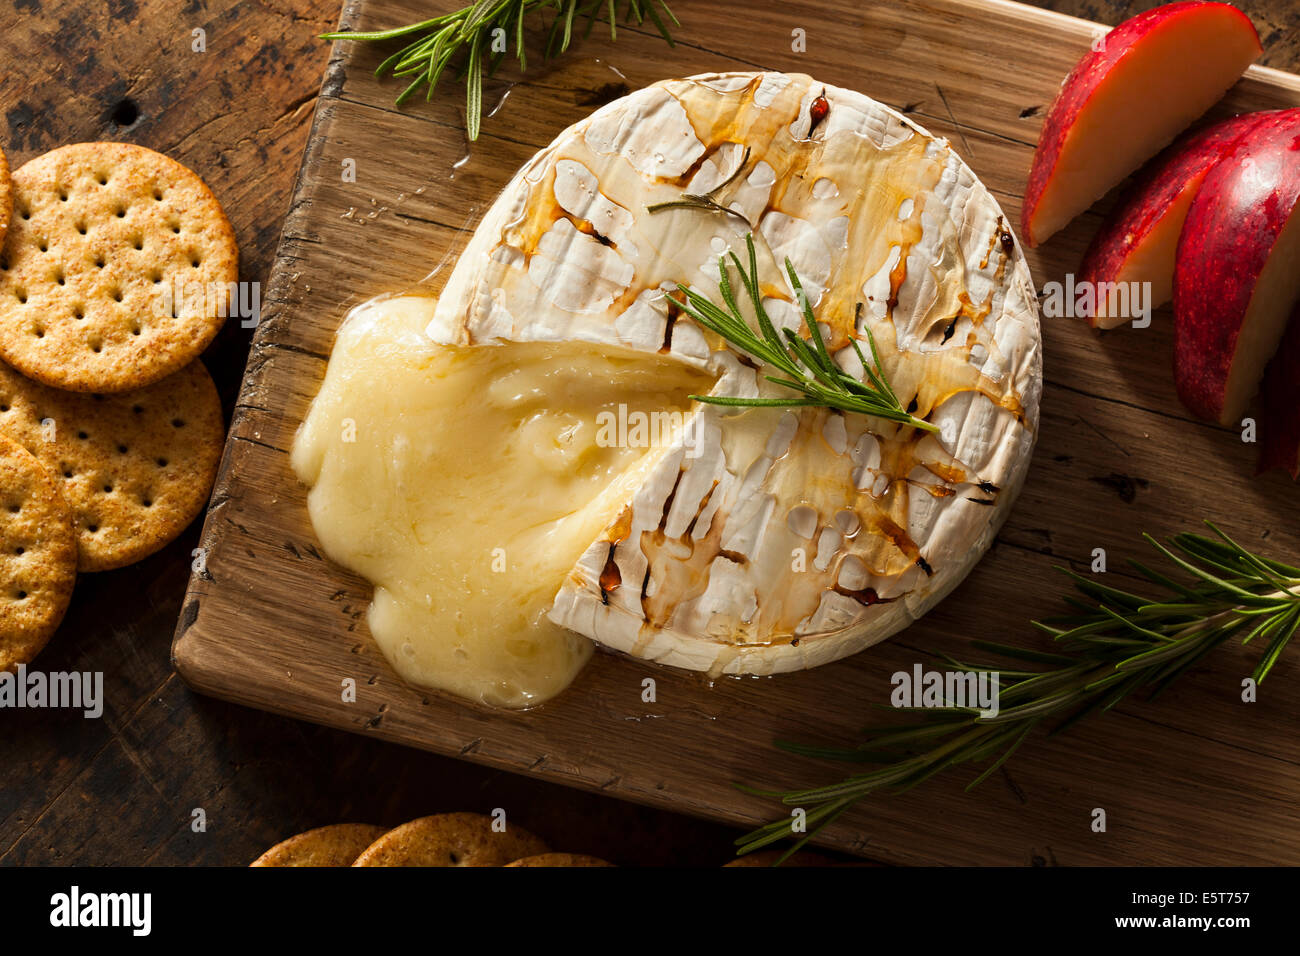 Homemade Baked Brie with Honey and Rosemary - Stock Image